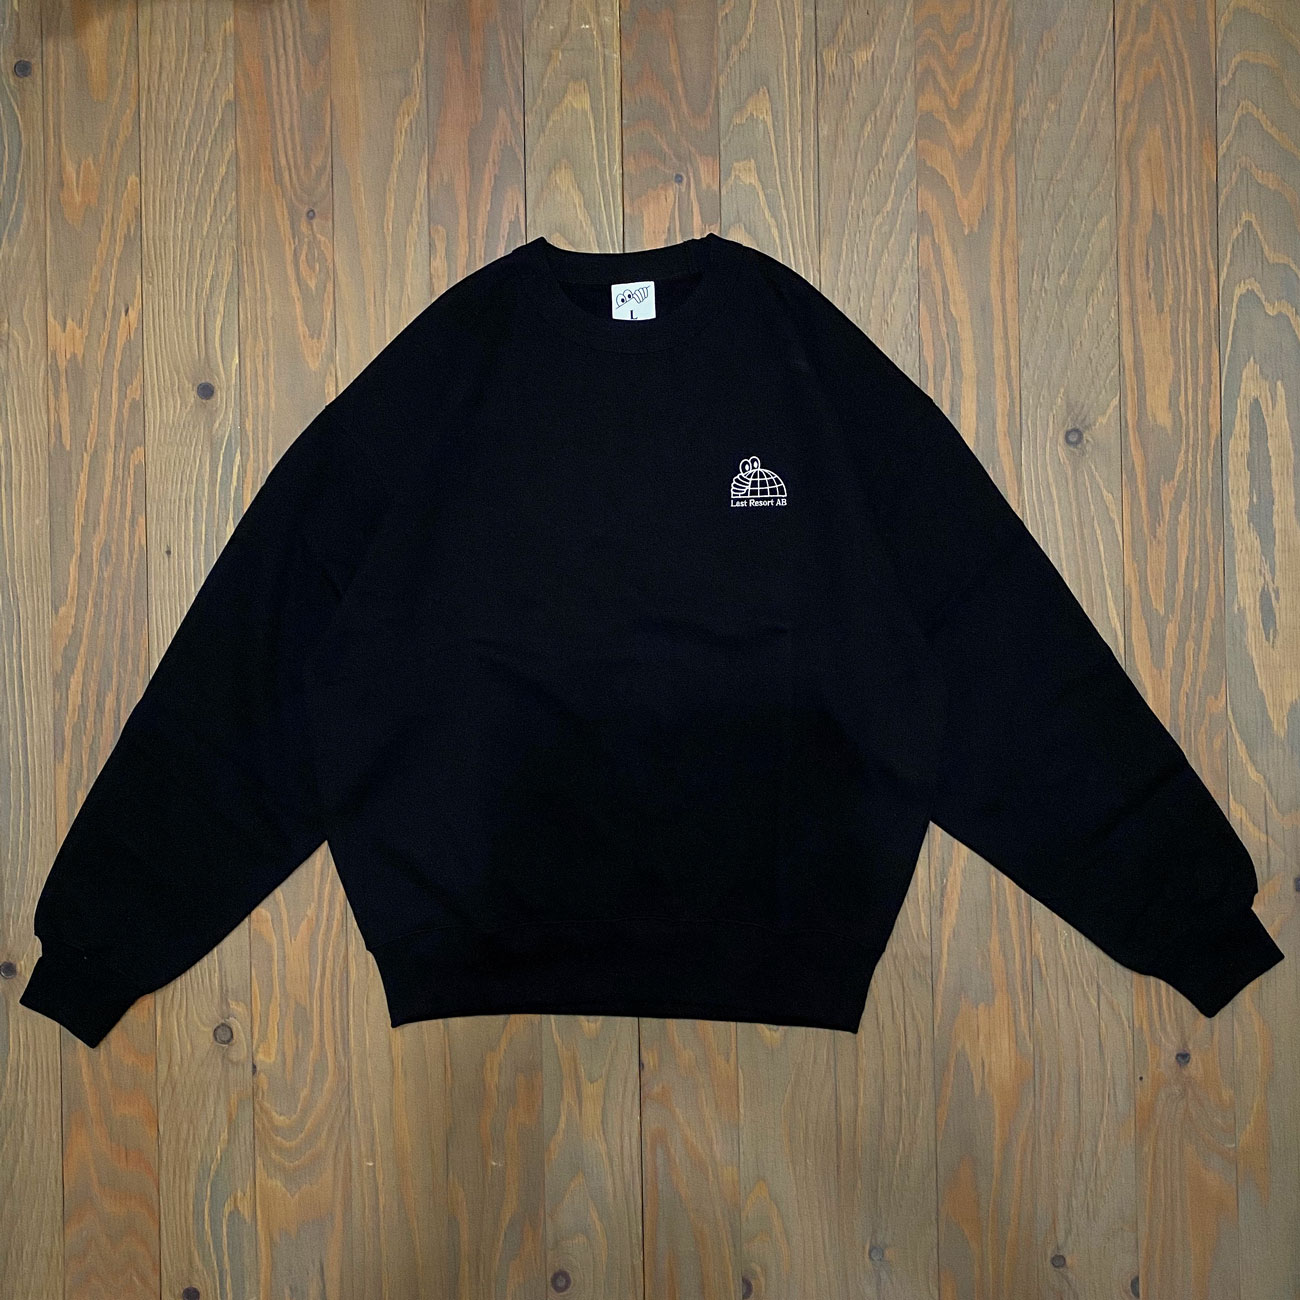 LAST RESORT HALF GLOBE CREWNECK BLACK